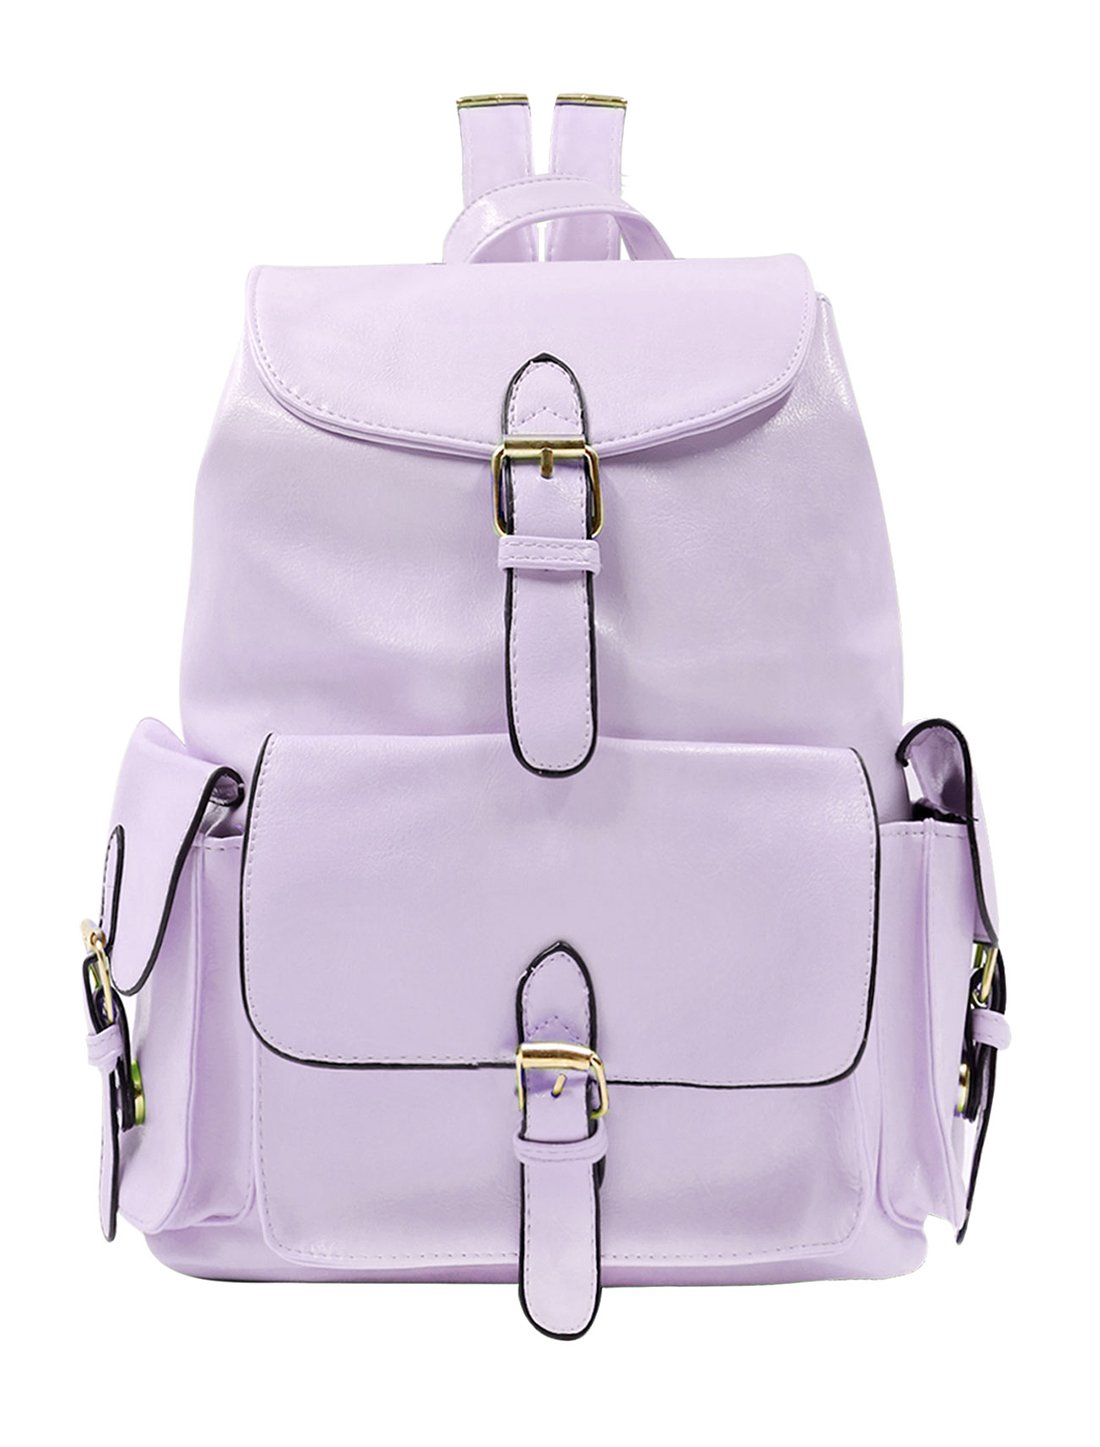 Lady Buckled Drawstring School Bag Imitation Leather Backpack Lilac